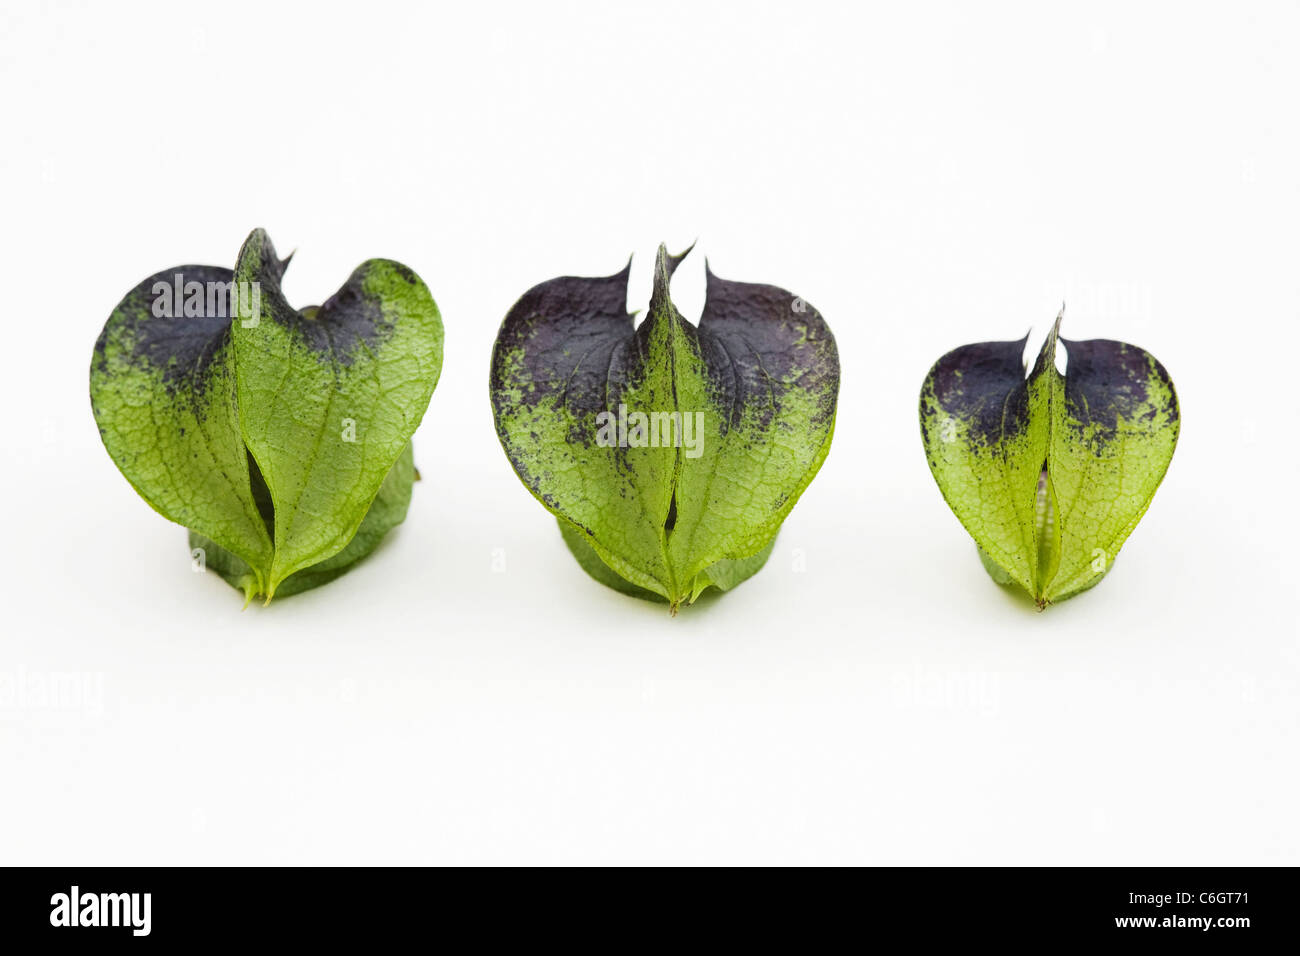 Nicandra physalodes. Unripe seed pods of the shoo-fly plant on a white background. - Stock Image